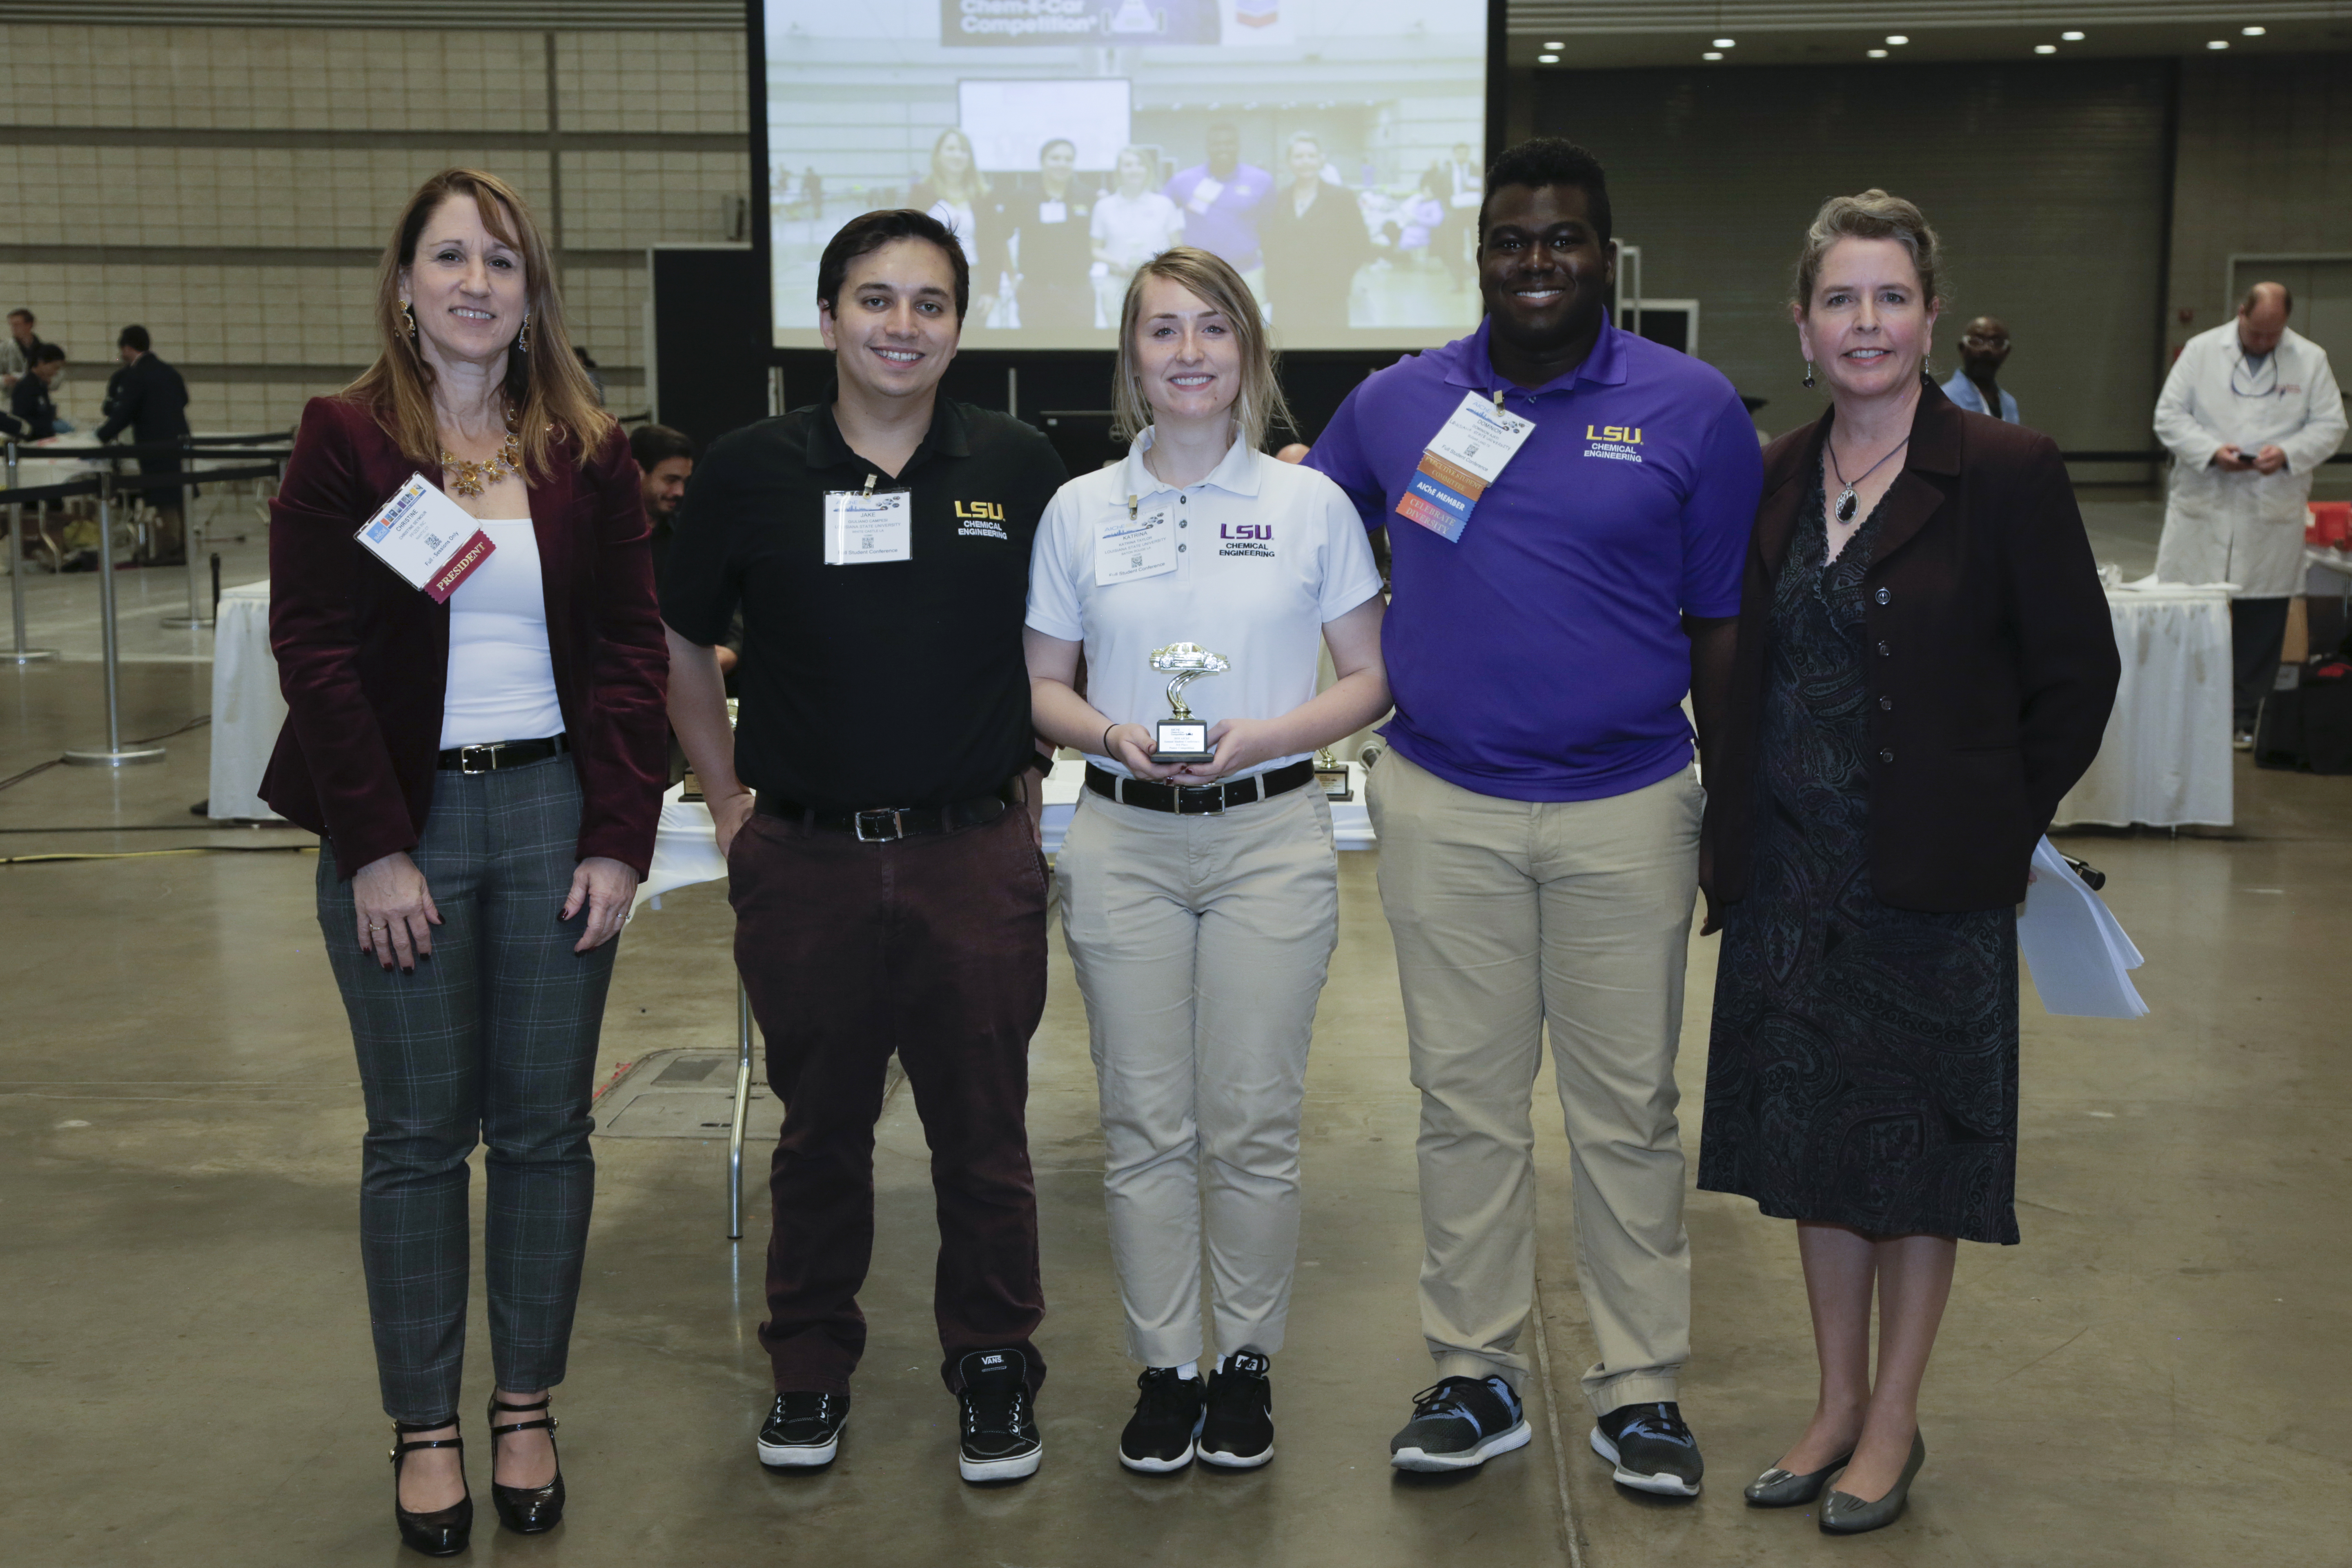 Louisiana State University, third place in poster competition